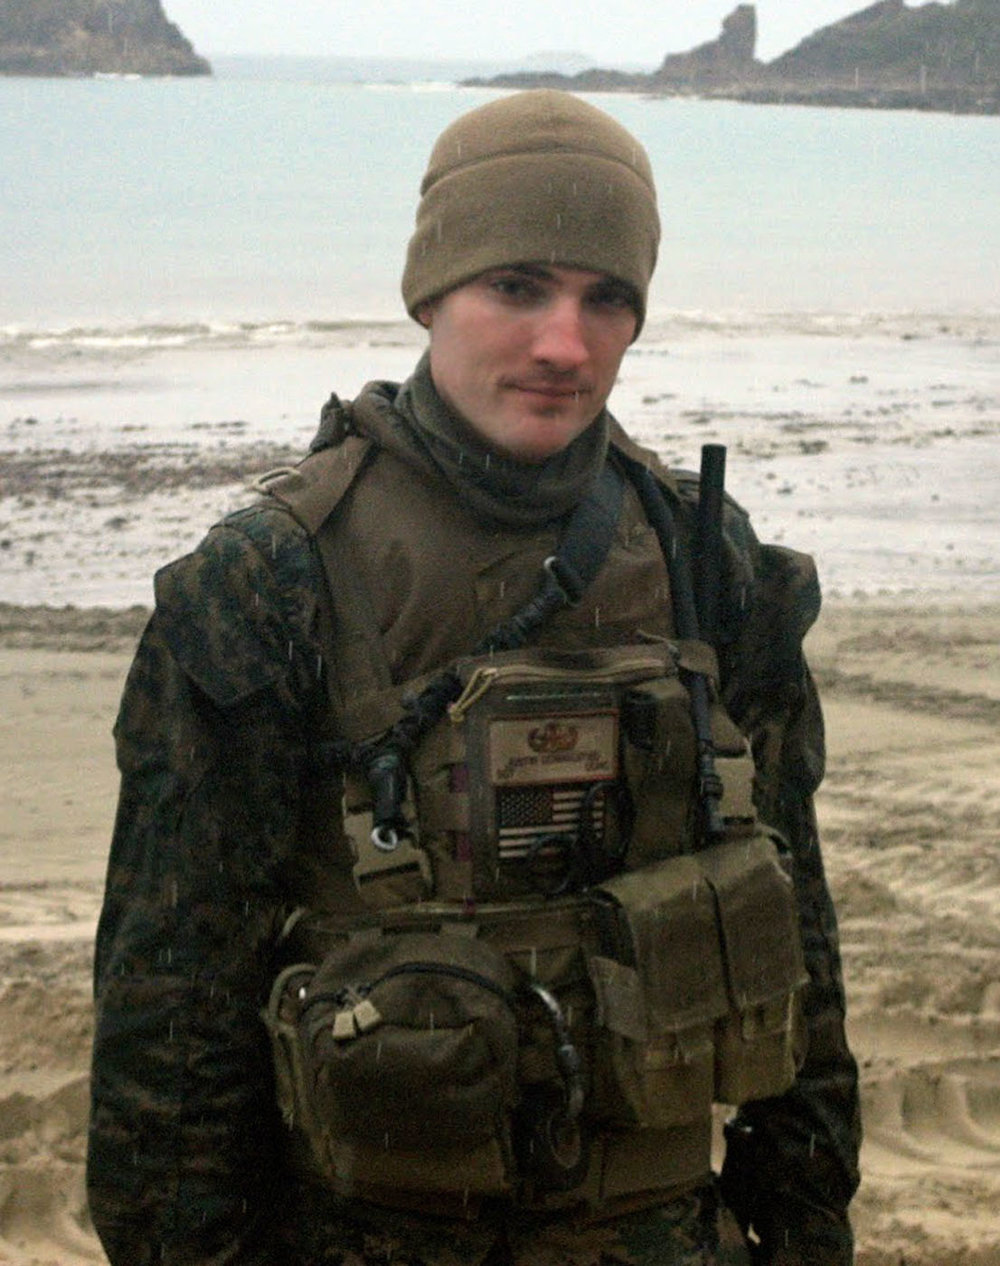 U.S. Marine Corps Staff Sergeant Justin E. Schmalstieg, 28, of Pittsburgh, Pennsylvania, assigned to the 1st Explosive Ordnance Disposal Company, 7th Engineer Support Battalion, 1st Marine Logistics Group, I Marine Expeditionary Force, based in Camp Pendleton, California, died on December 15, 2010 while conducting combat operations in Helmand province, Afghanistan. He is survived by his wife Ann Schneider, parents John and Deborah Gilkey, and brother John.